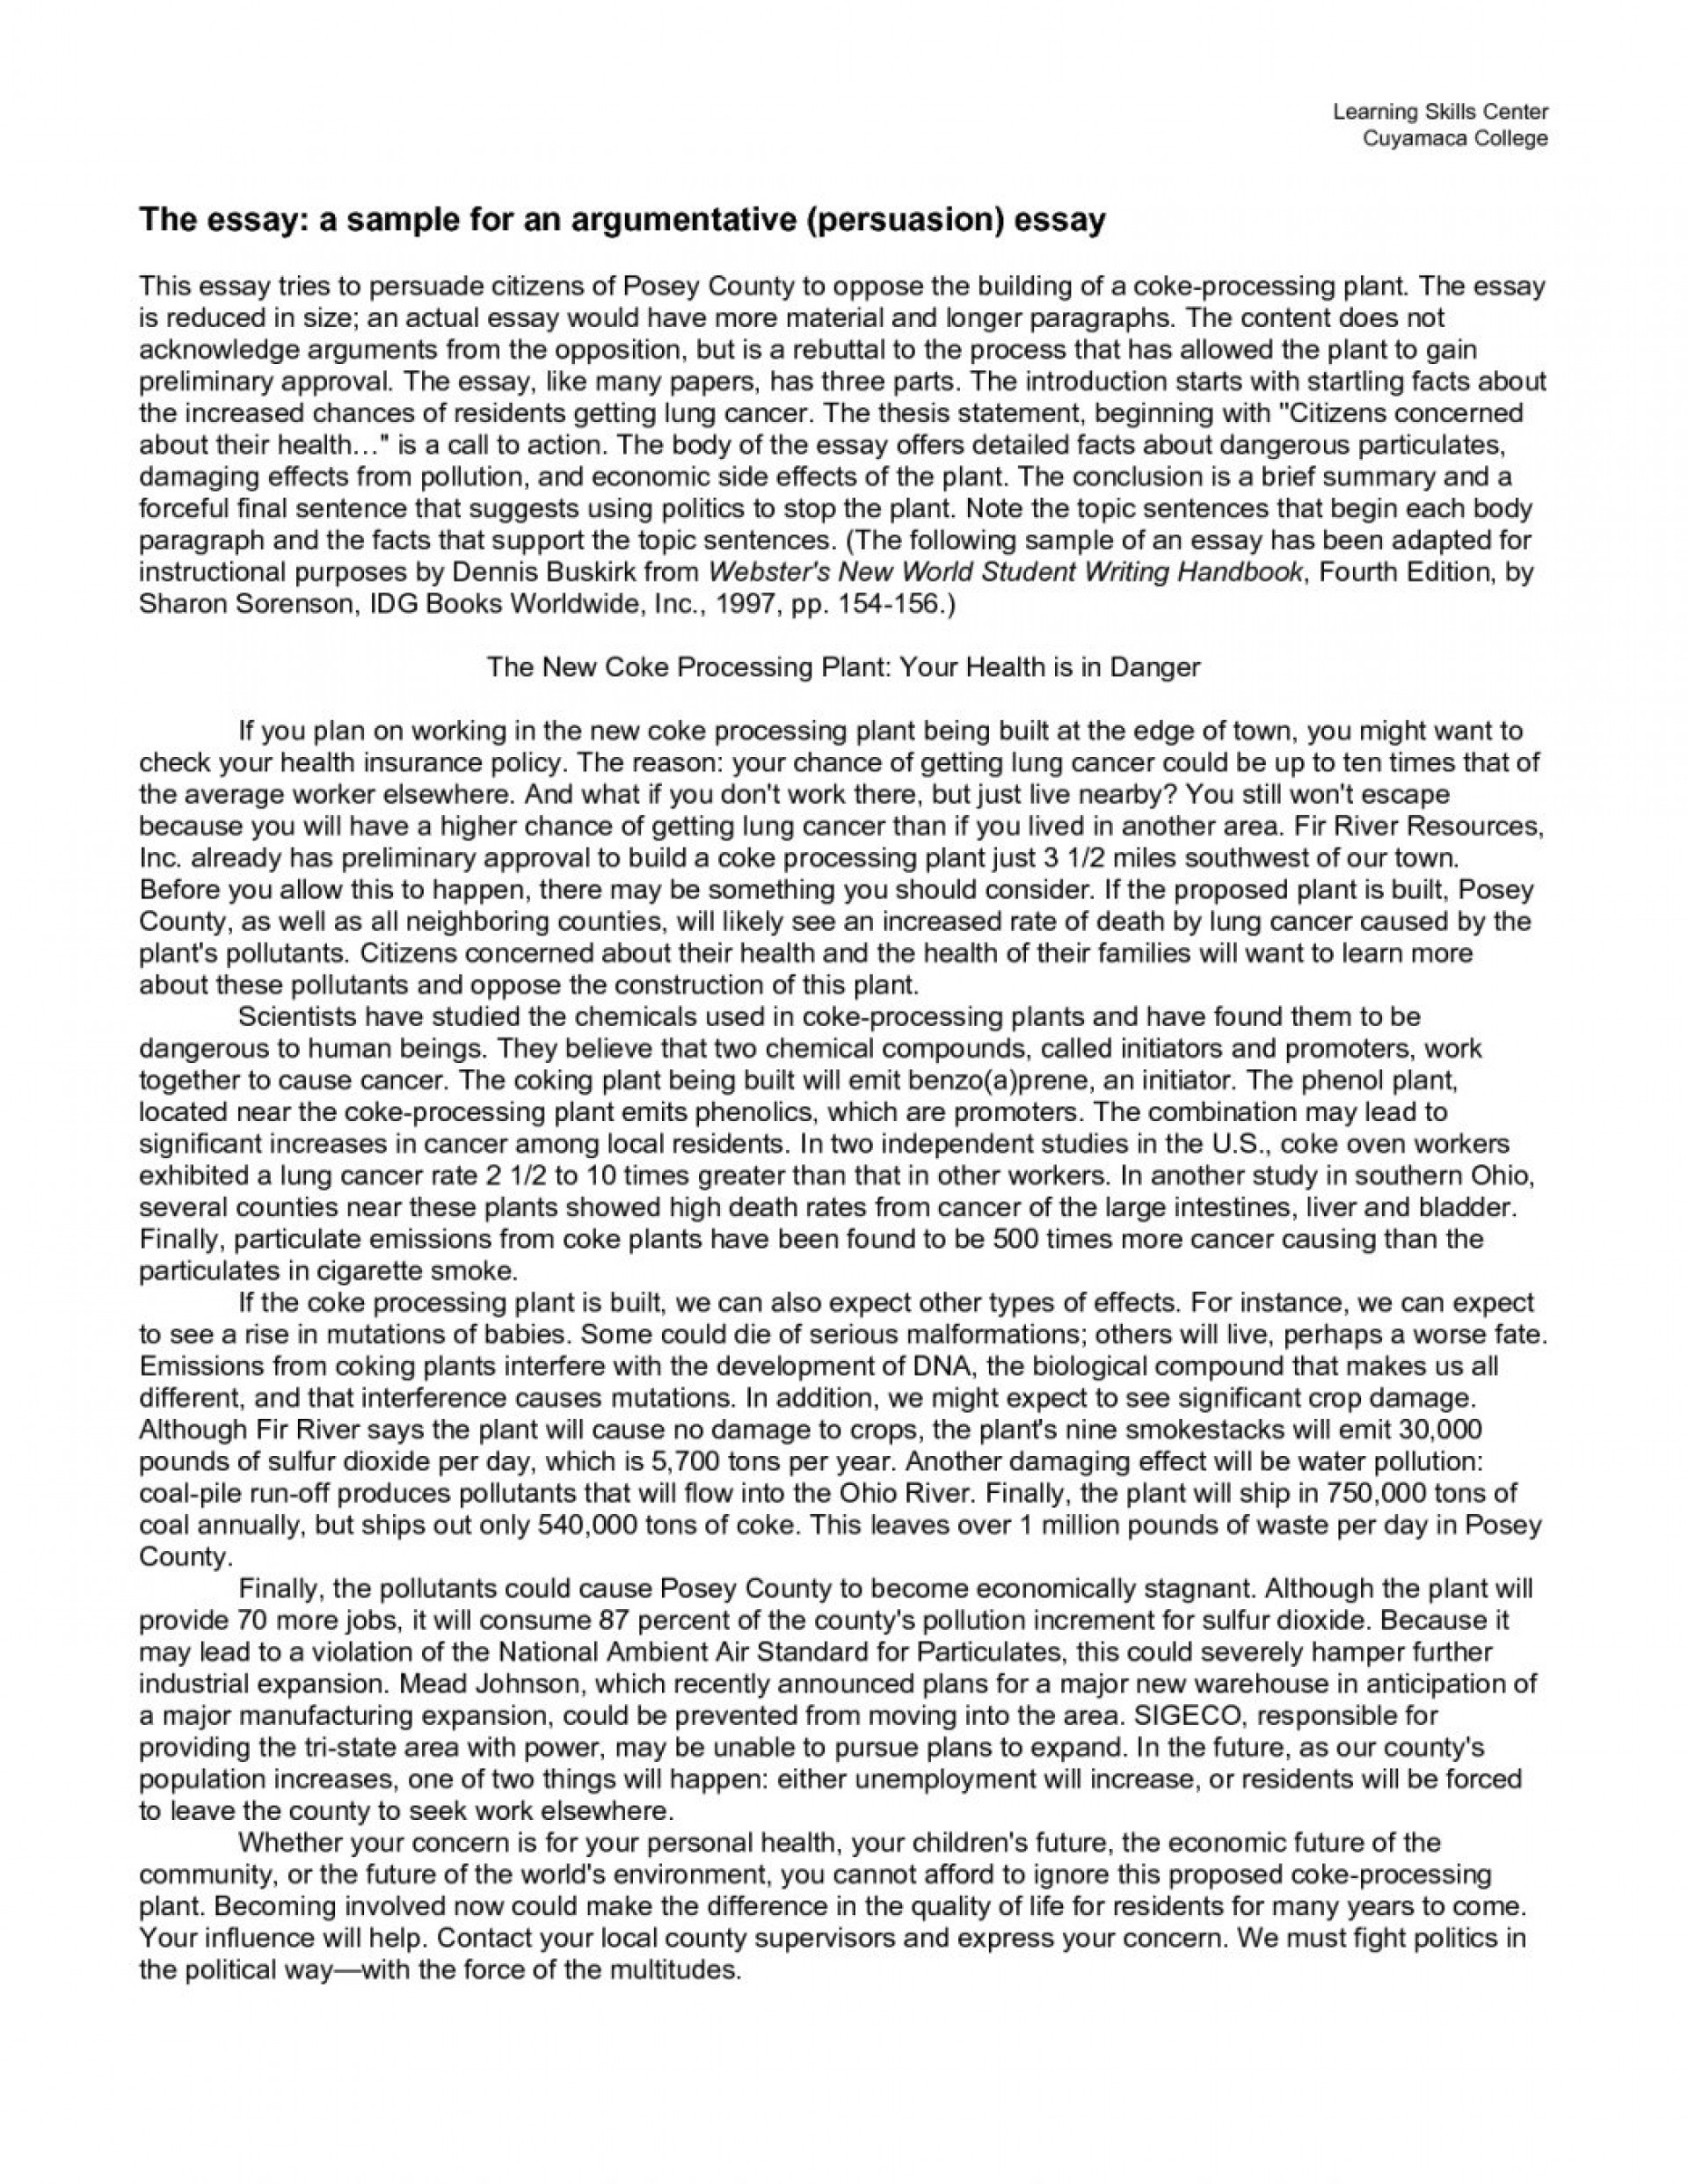 004 Essay Example Introduction Of An Argumentative Examples For College Ironviper Co With Outline Breathtaking Board Prompts Samples 1920